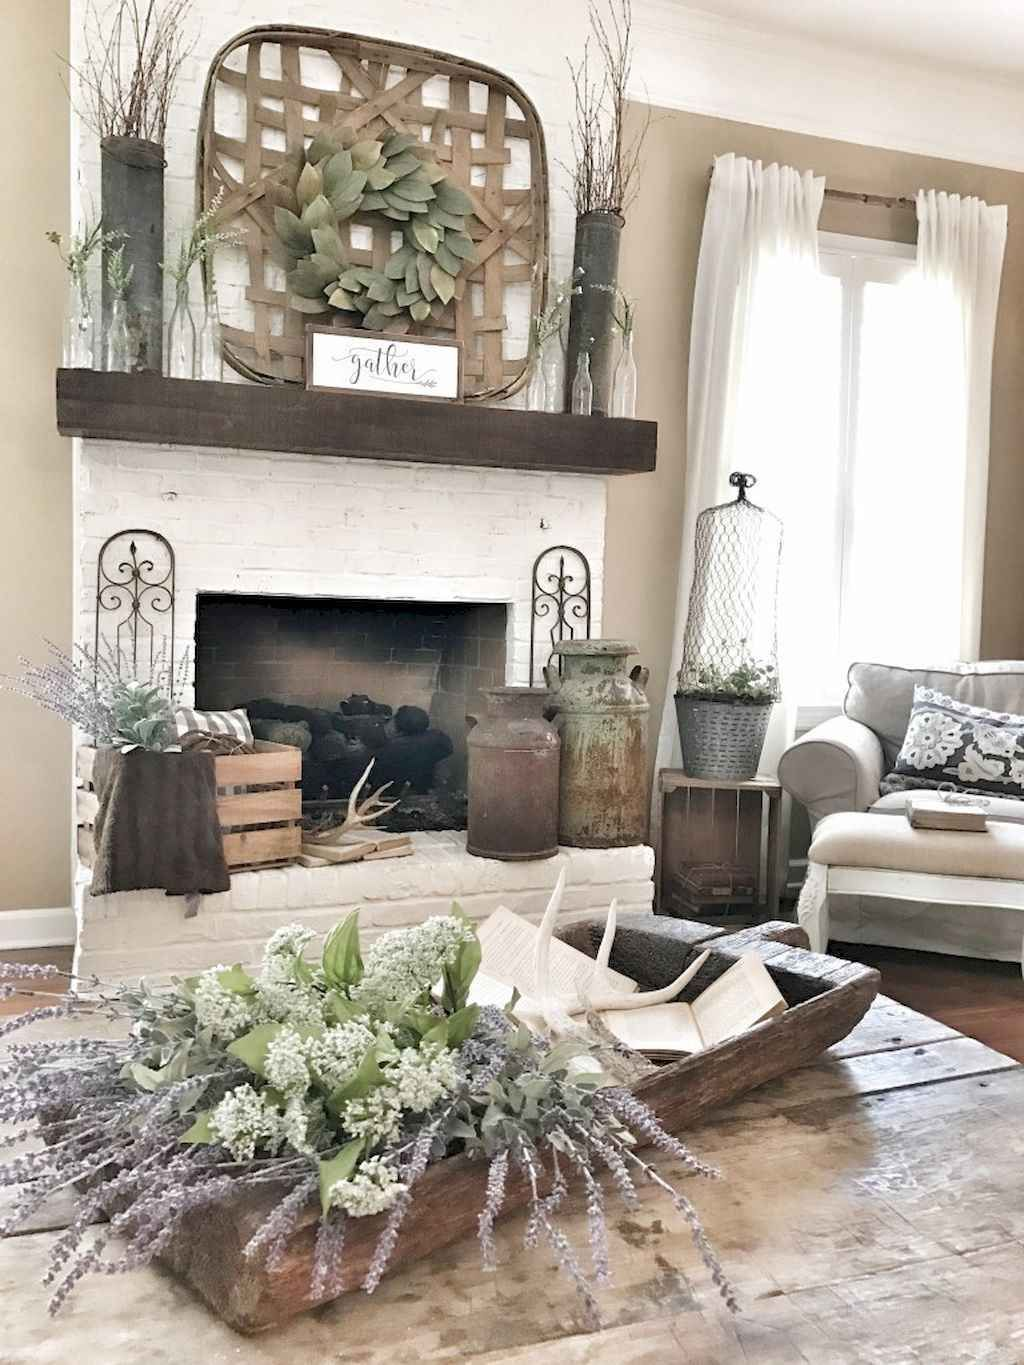 45+ Living room fireplace mantel decorating ideas information